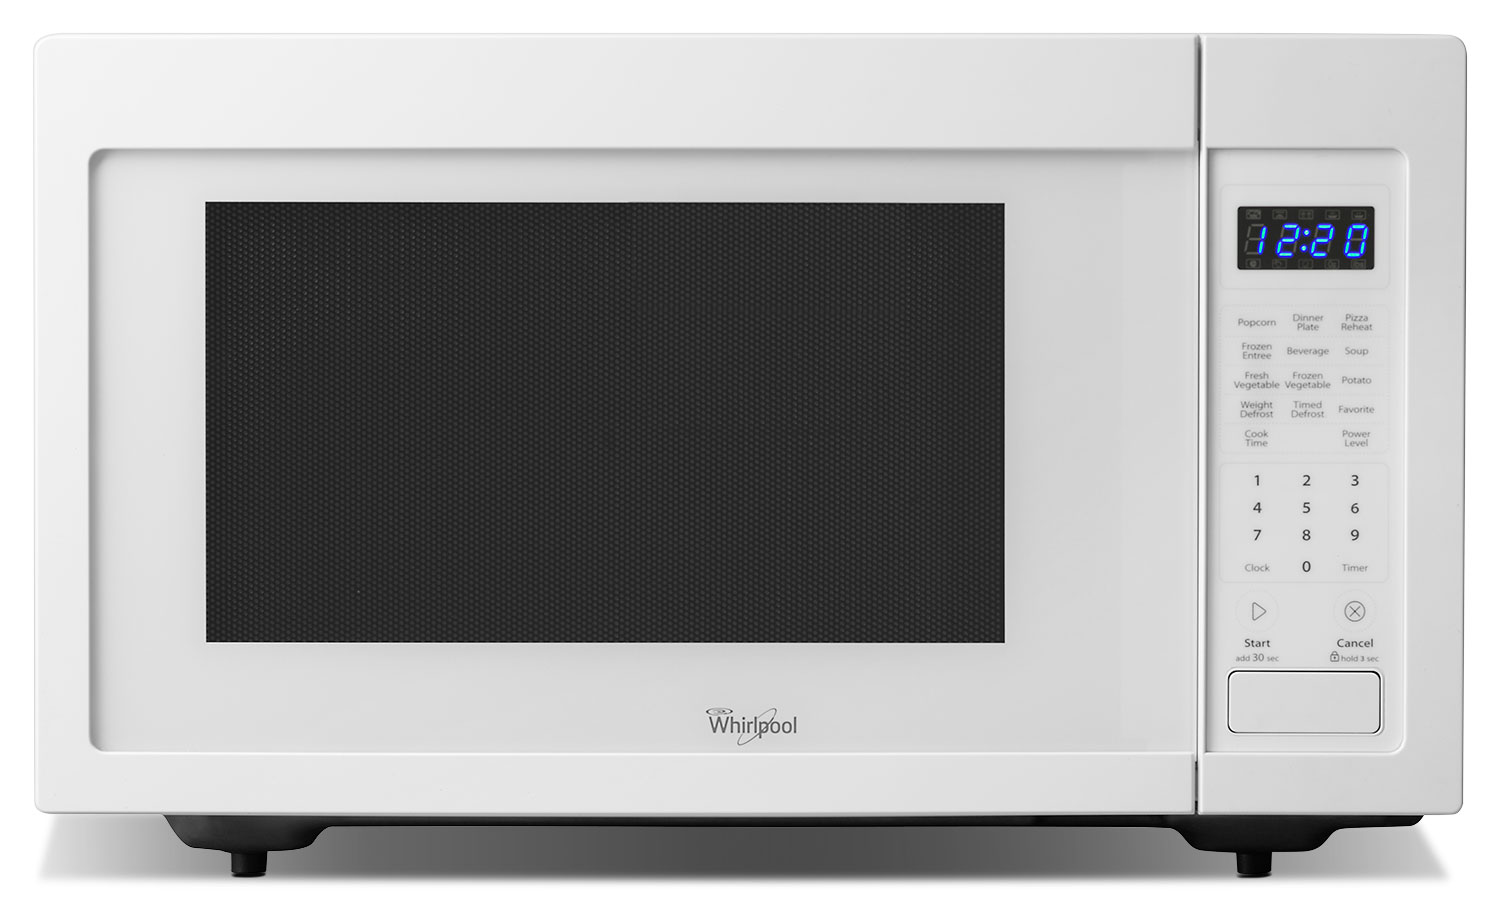 Countertop Microwave Installation : ... - Whirlpool White Countertop Microwave (1.6 Cu. Ft.) - YWMC30516DW